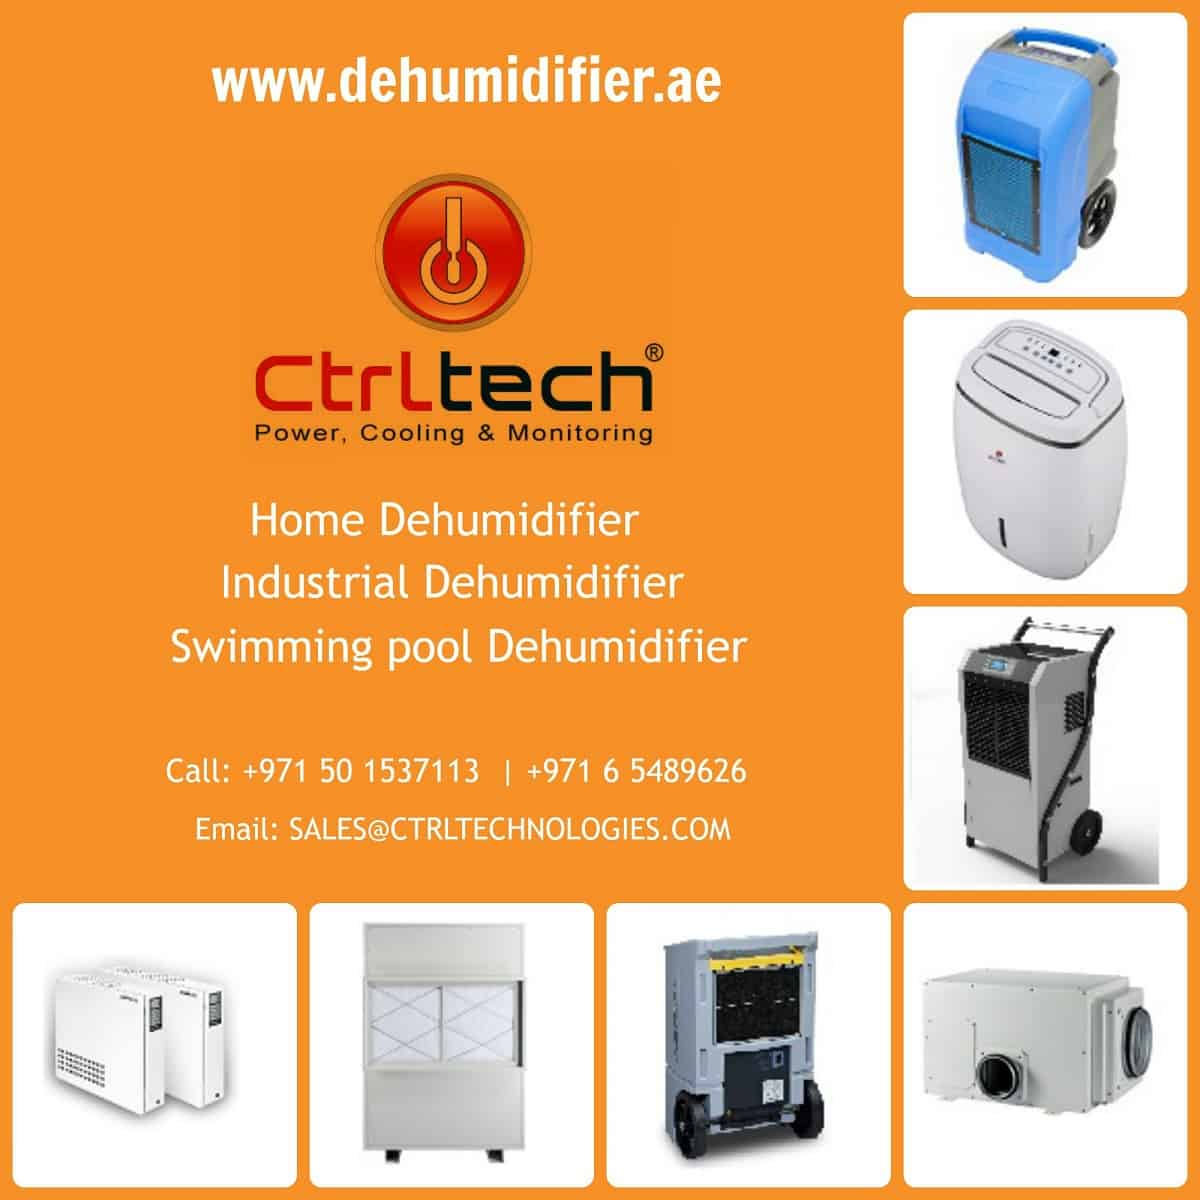 Dehumidifier range offered by CtrlTech Dehumidifiers in UAE for Dehumidificatioin.